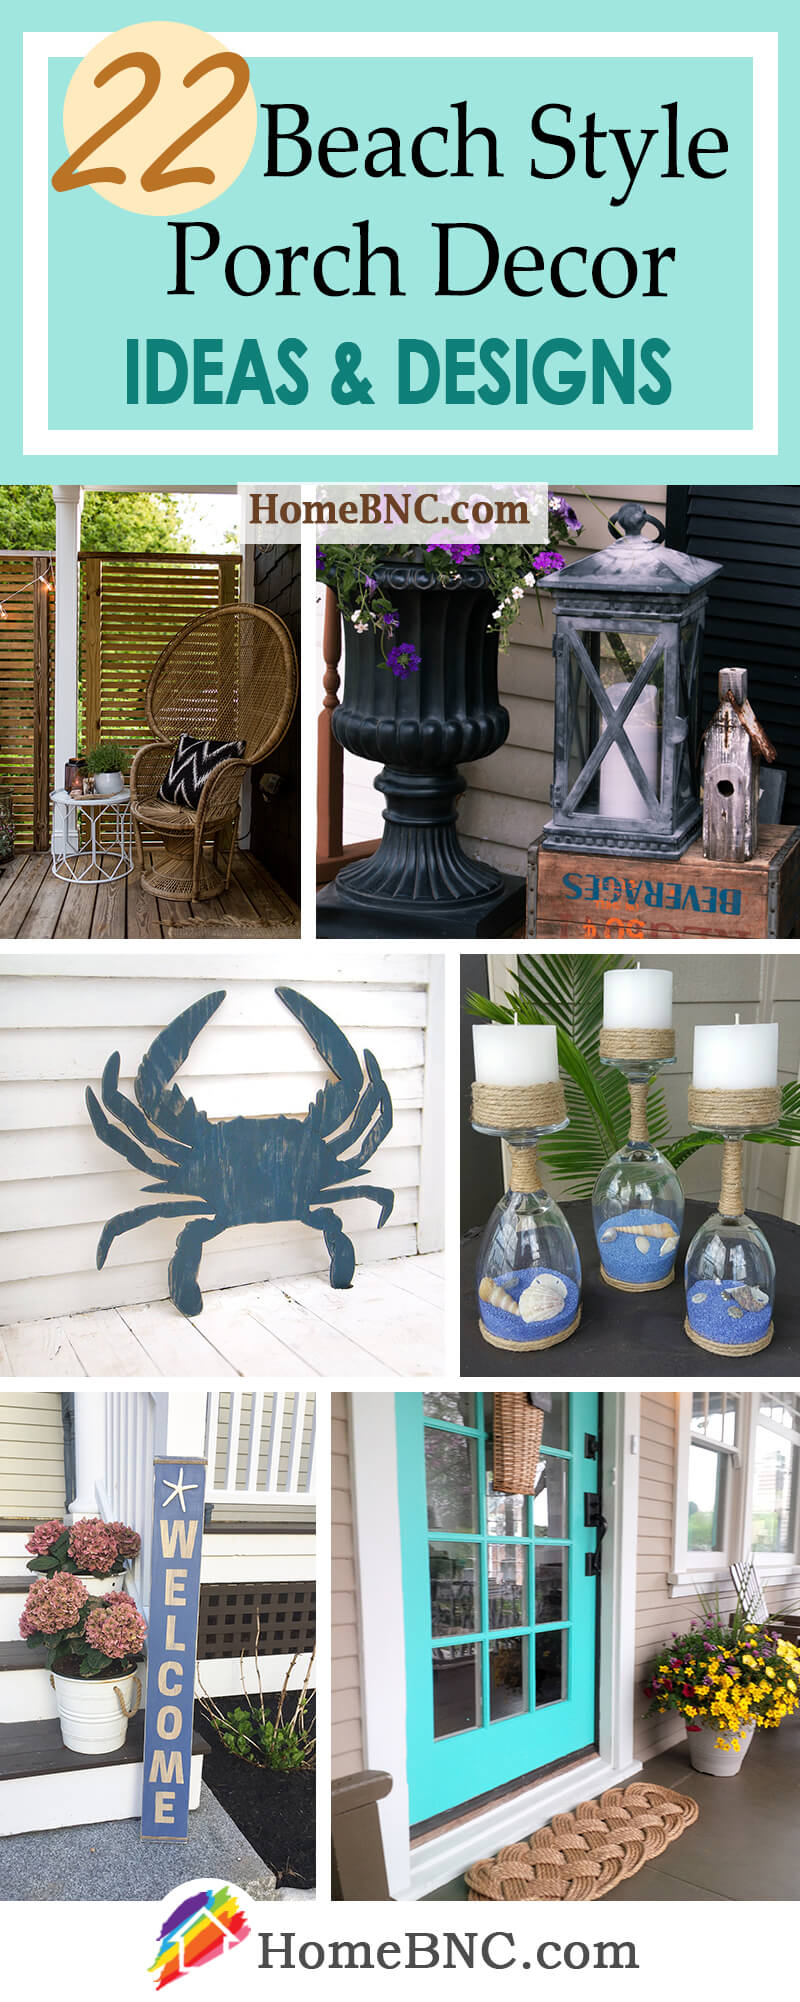 Beach Style Porch Decor Ideas